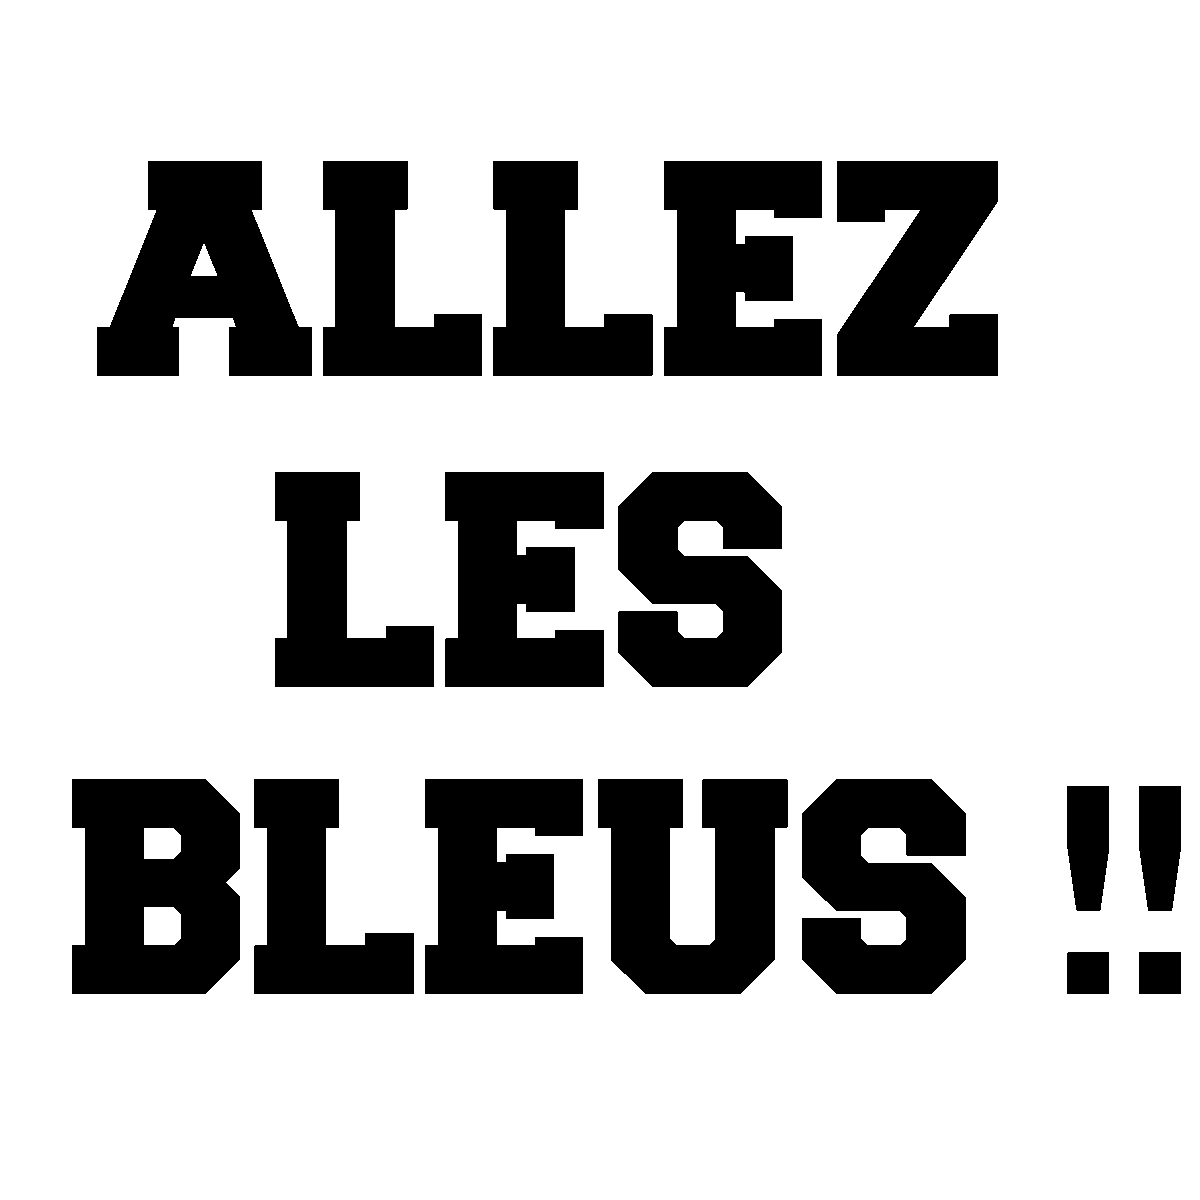 sticker allez les bleus stickers citations fran ais ambiance sticker. Black Bedroom Furniture Sets. Home Design Ideas